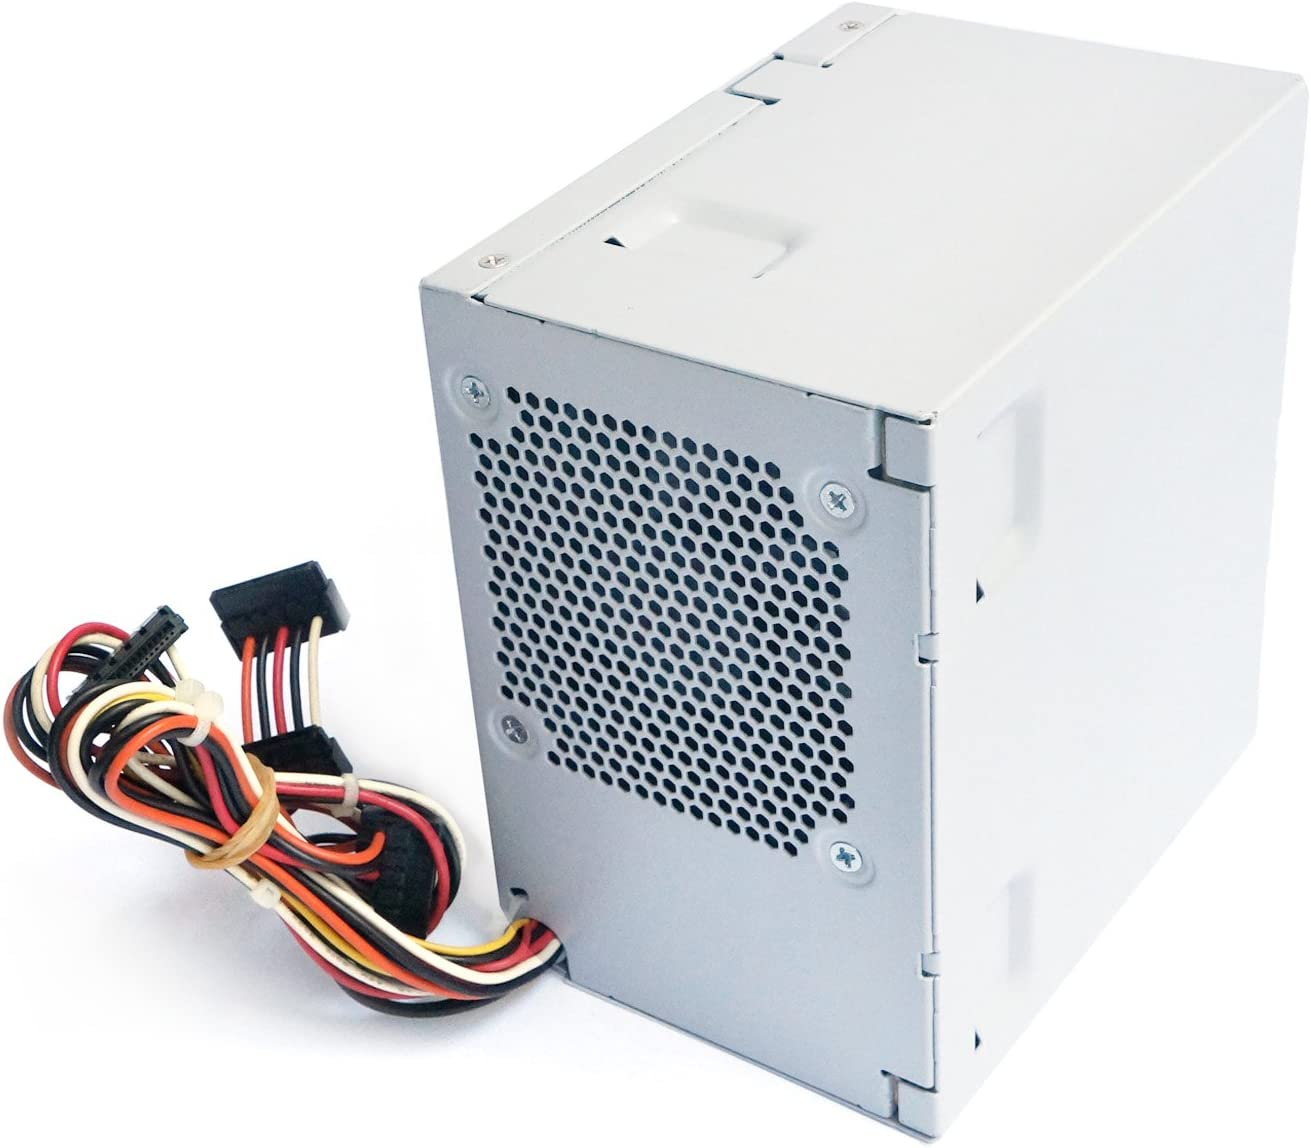 Dell Optiplex Genuine Original 305W Power Supply L305P-01 PS-6311-5DF-LF NH493